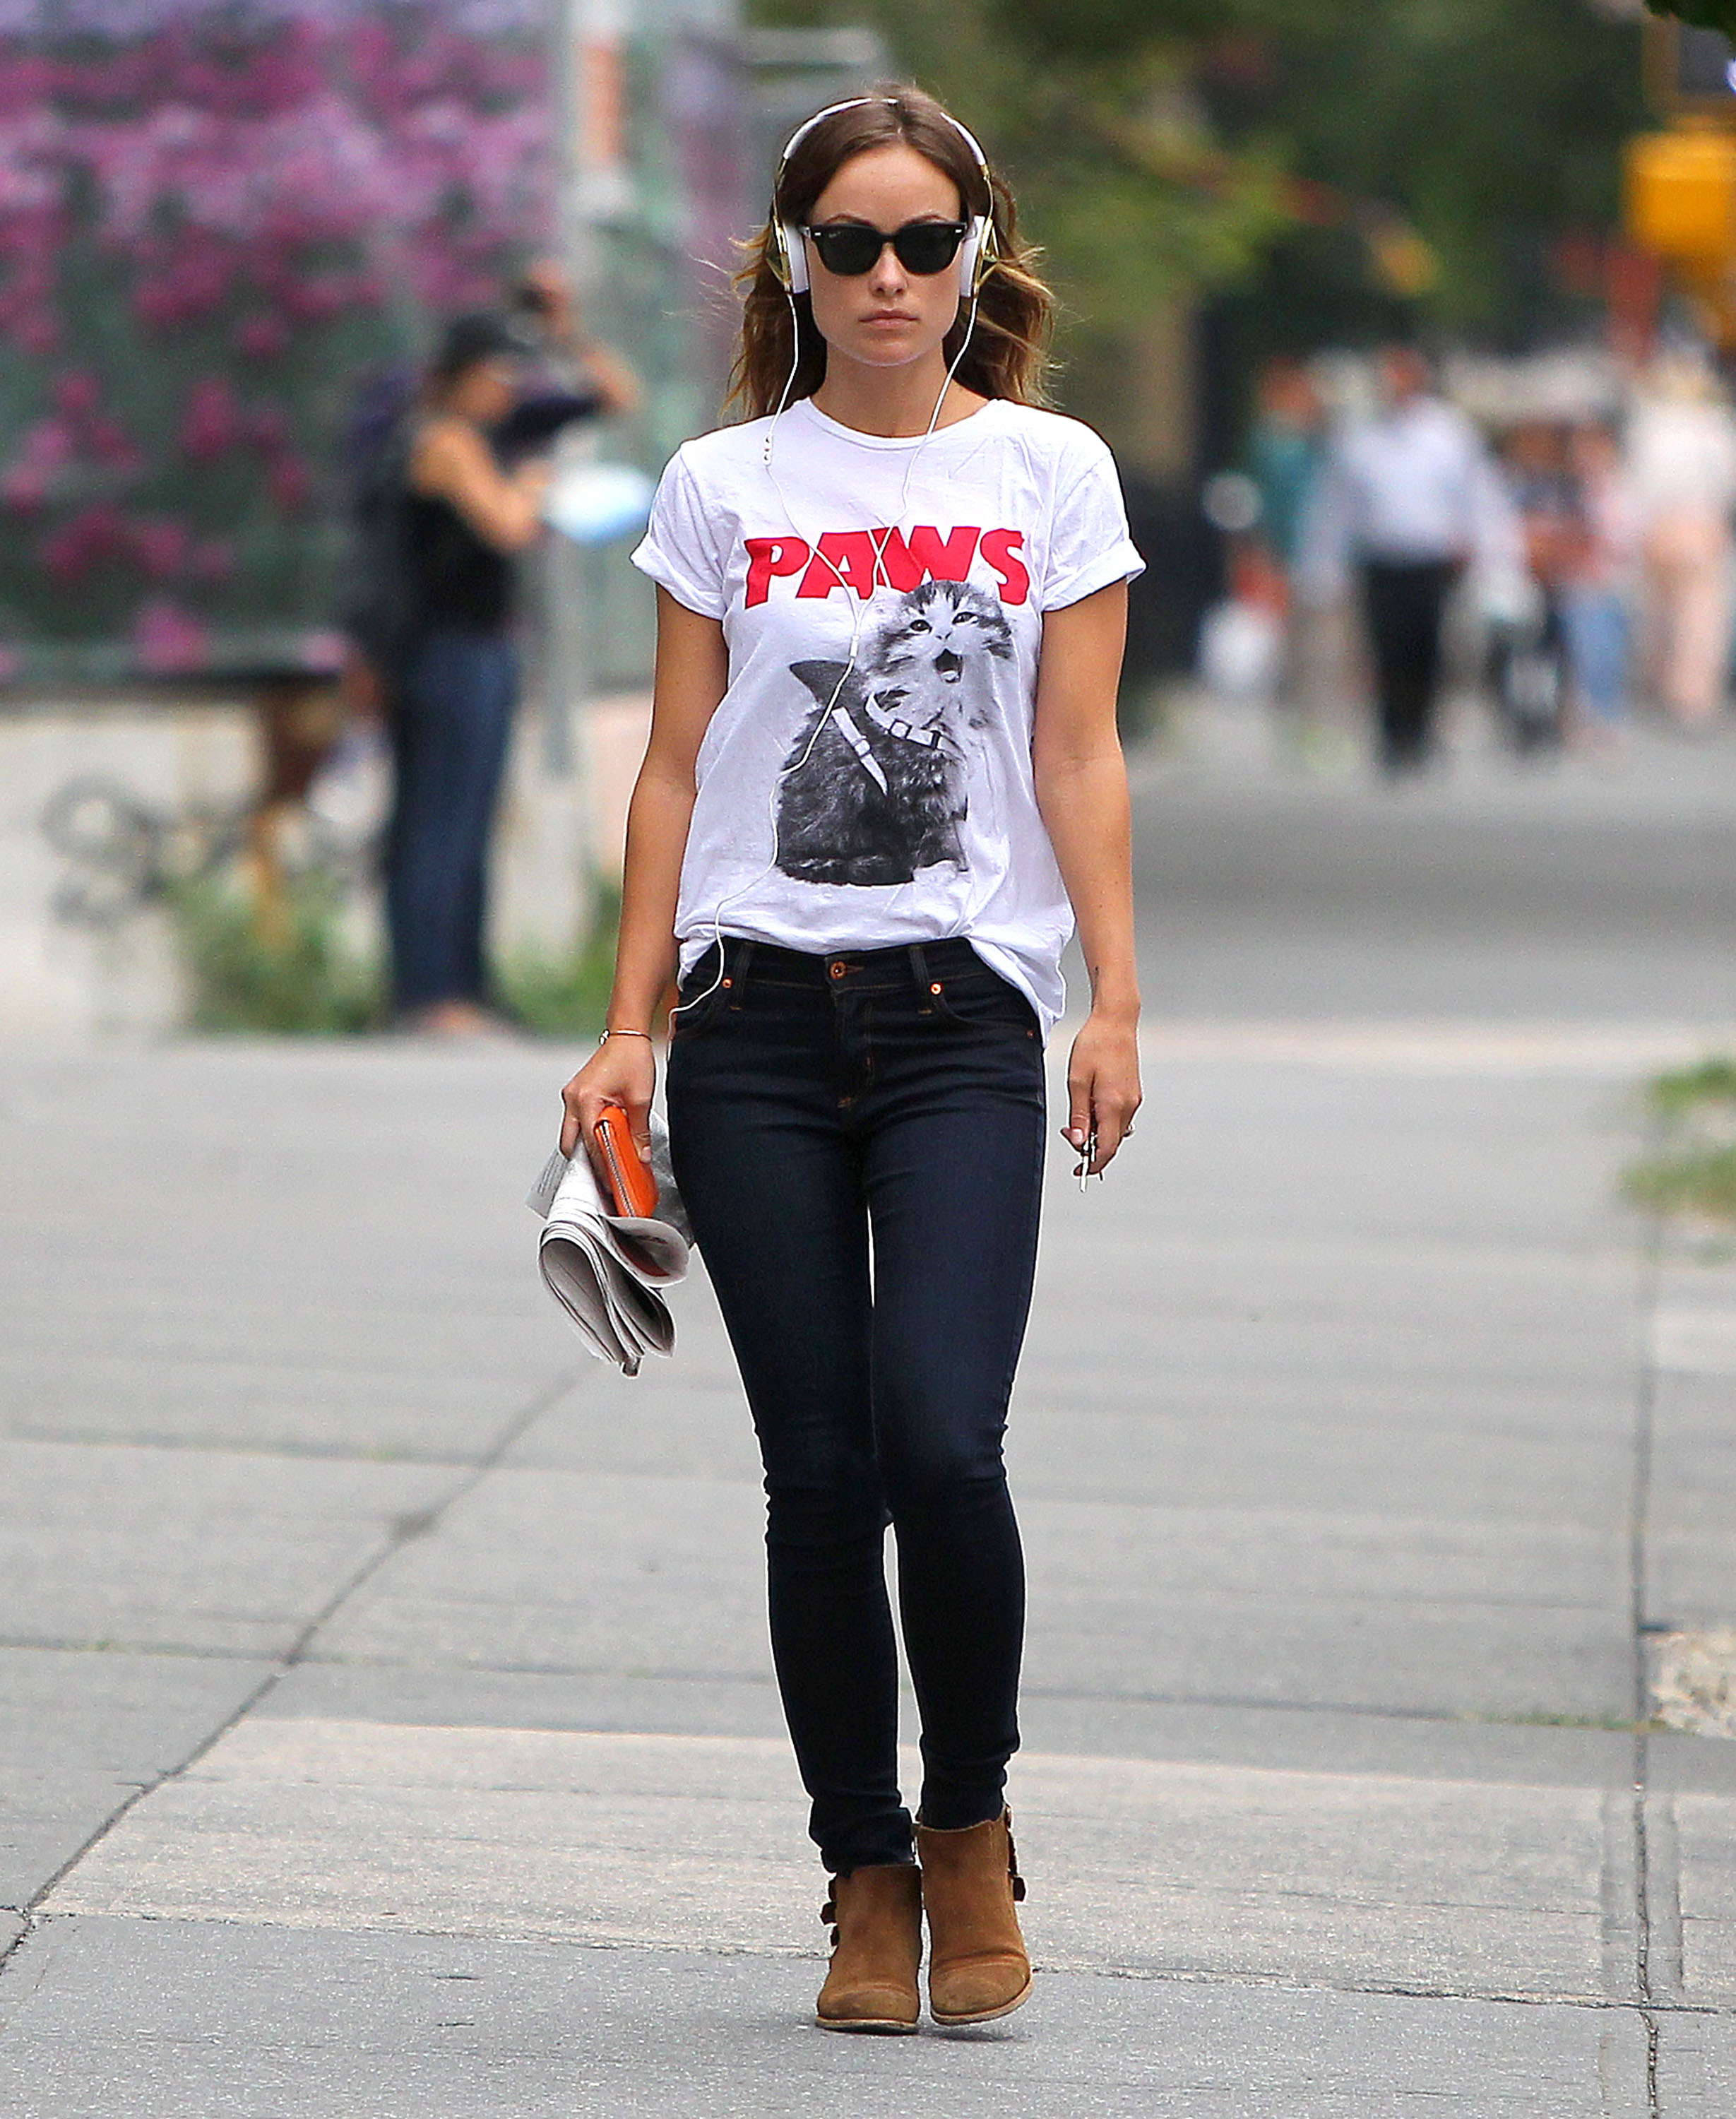 The Music Conquers The T-Shirts in The Autumn (And to Olivia Wilde)